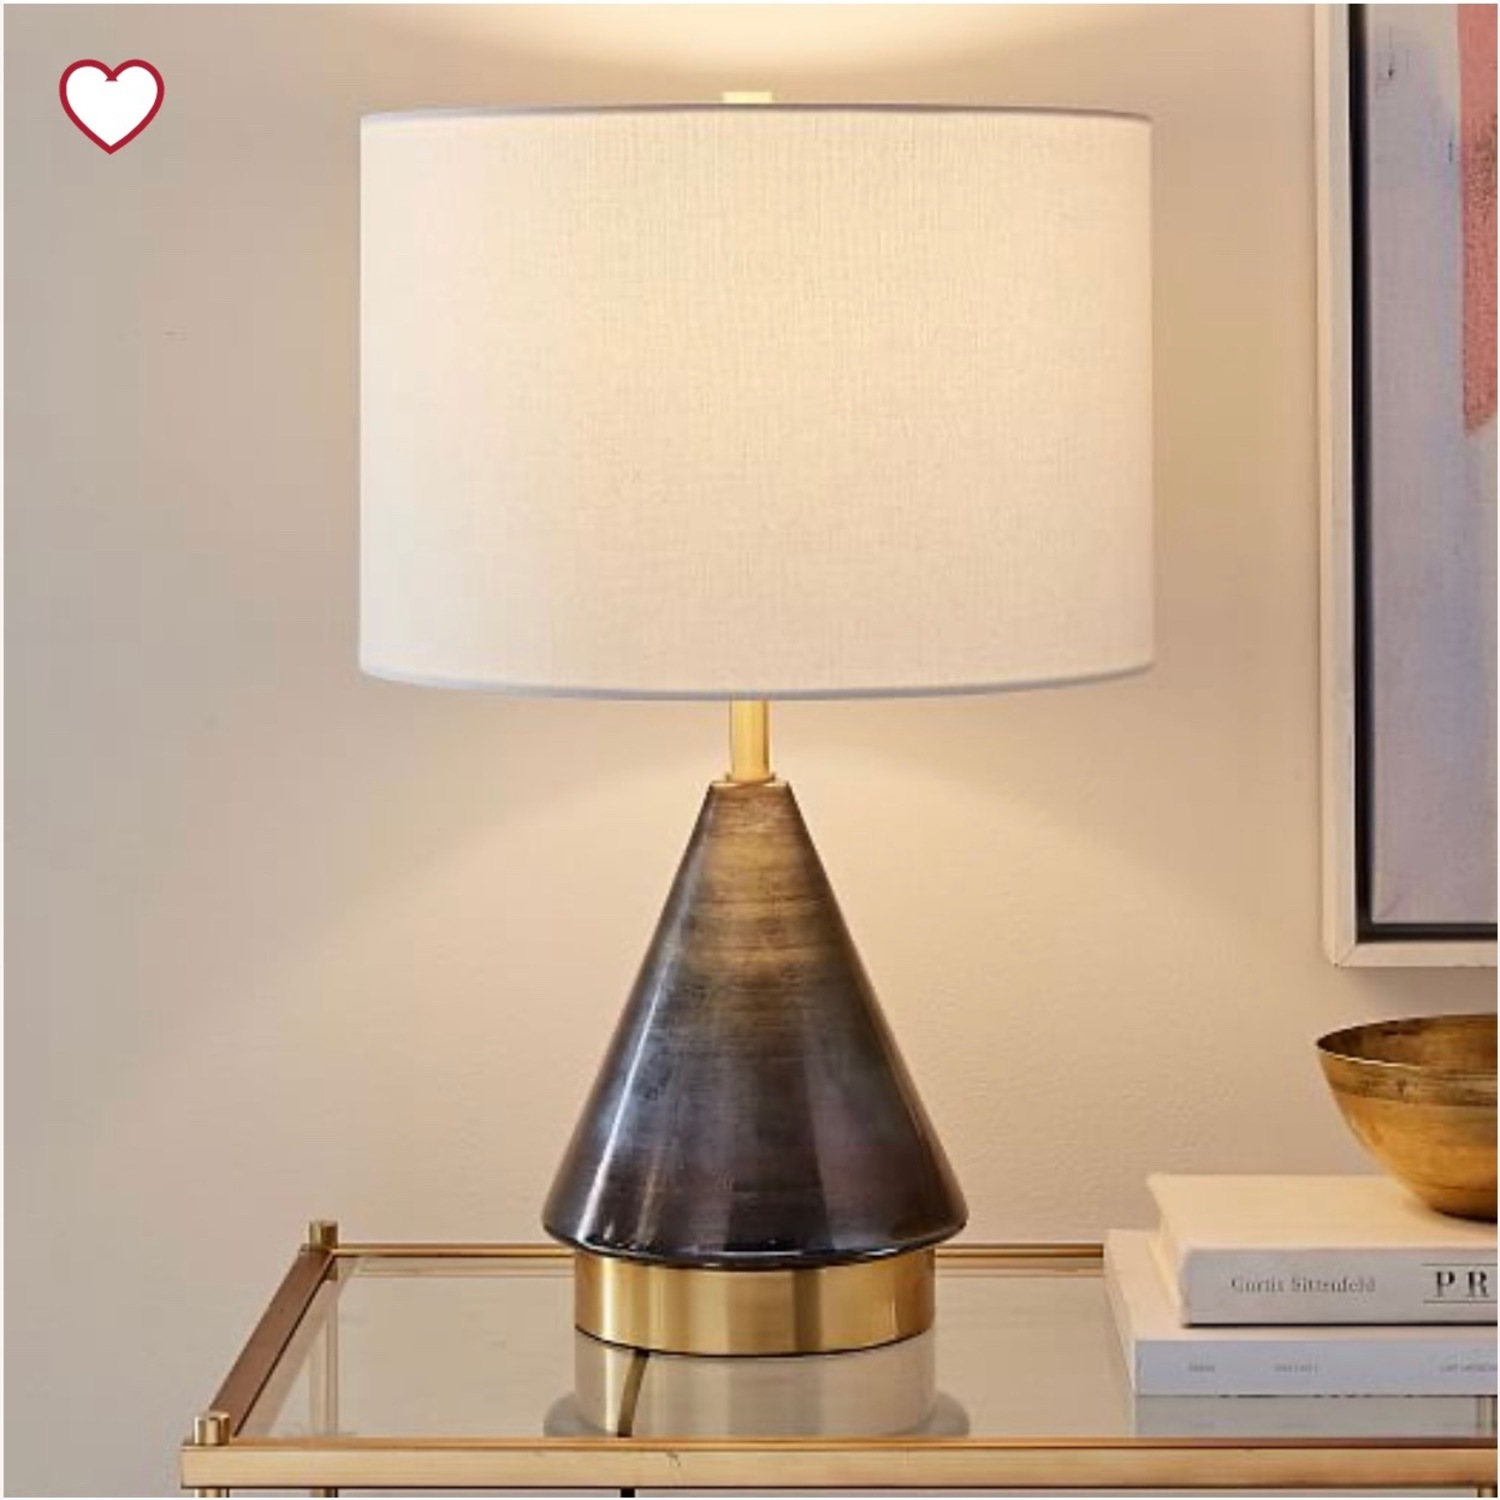 West Elm Metalized Glass USB Table Lamp - image-1